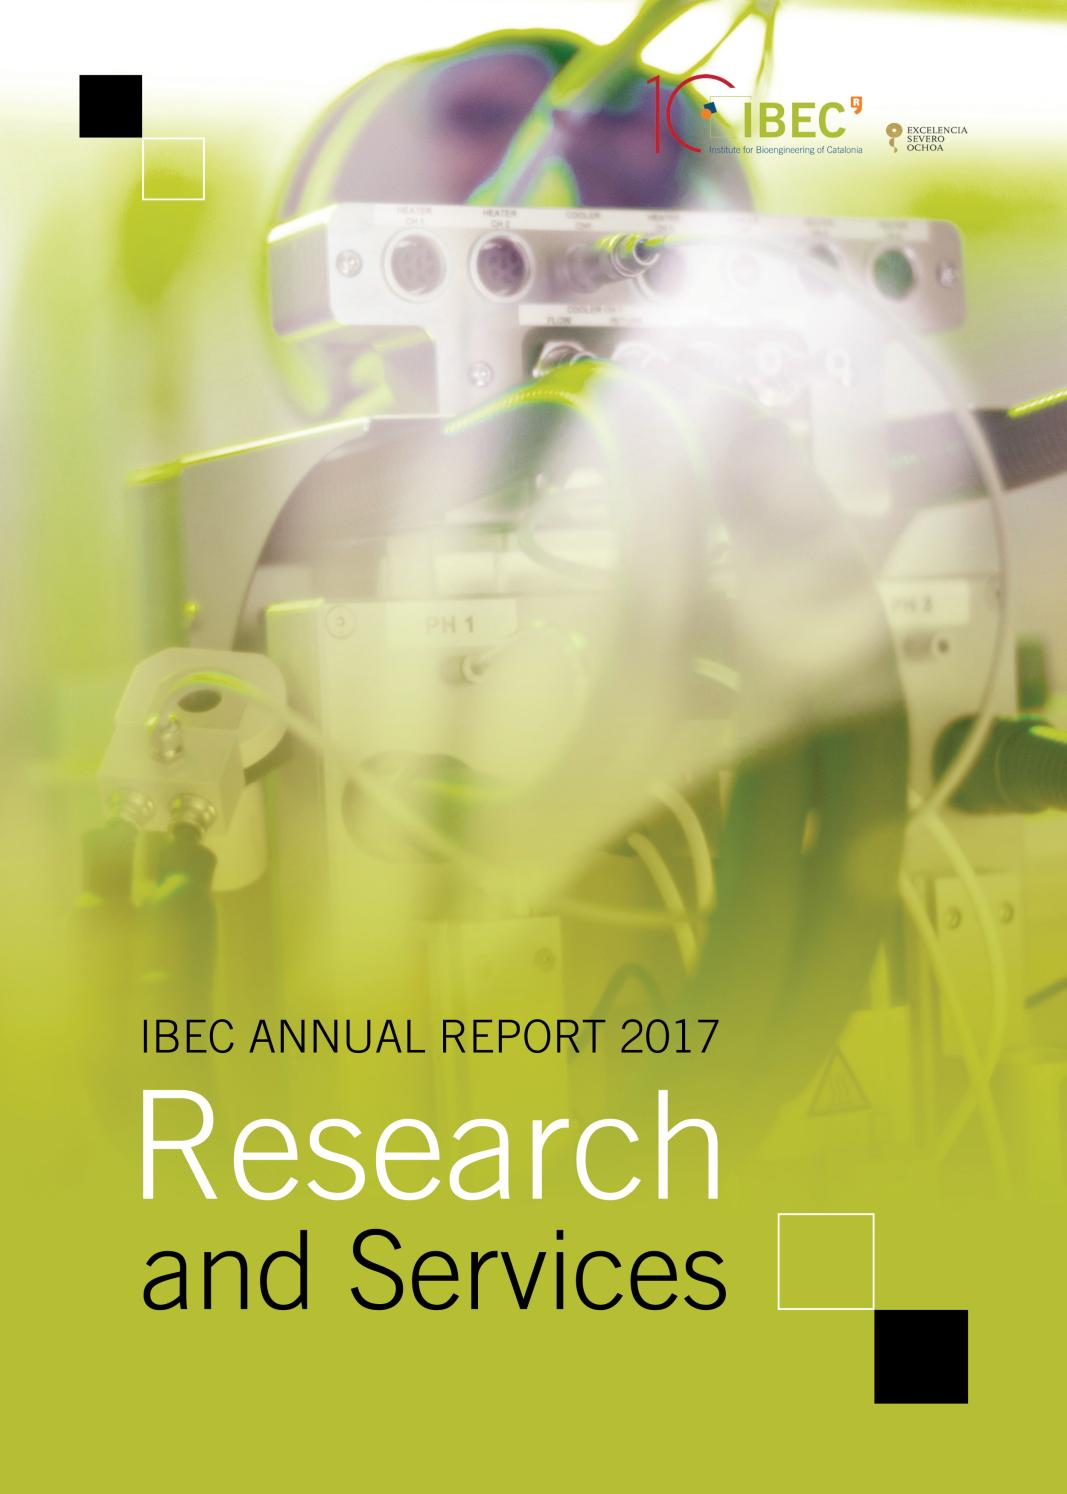 IBEC Annual Report 2017, part 2: Research and services by